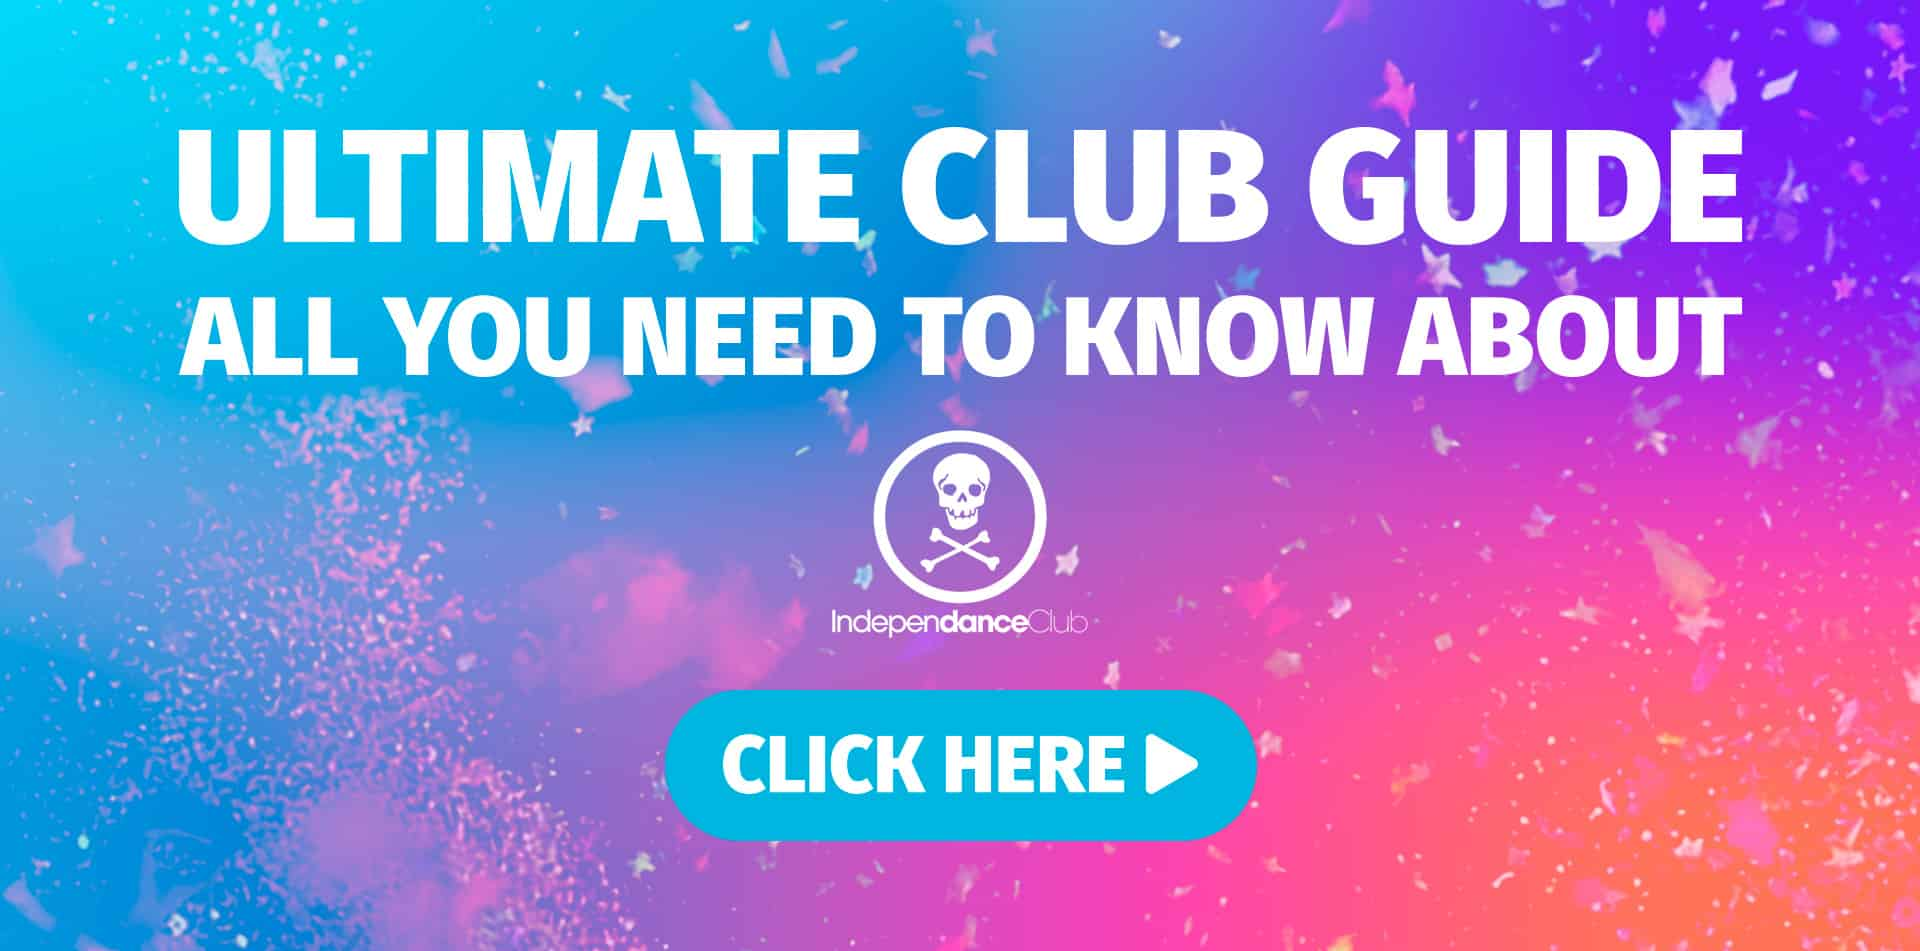 Ultimate Club Guide - Independance Club